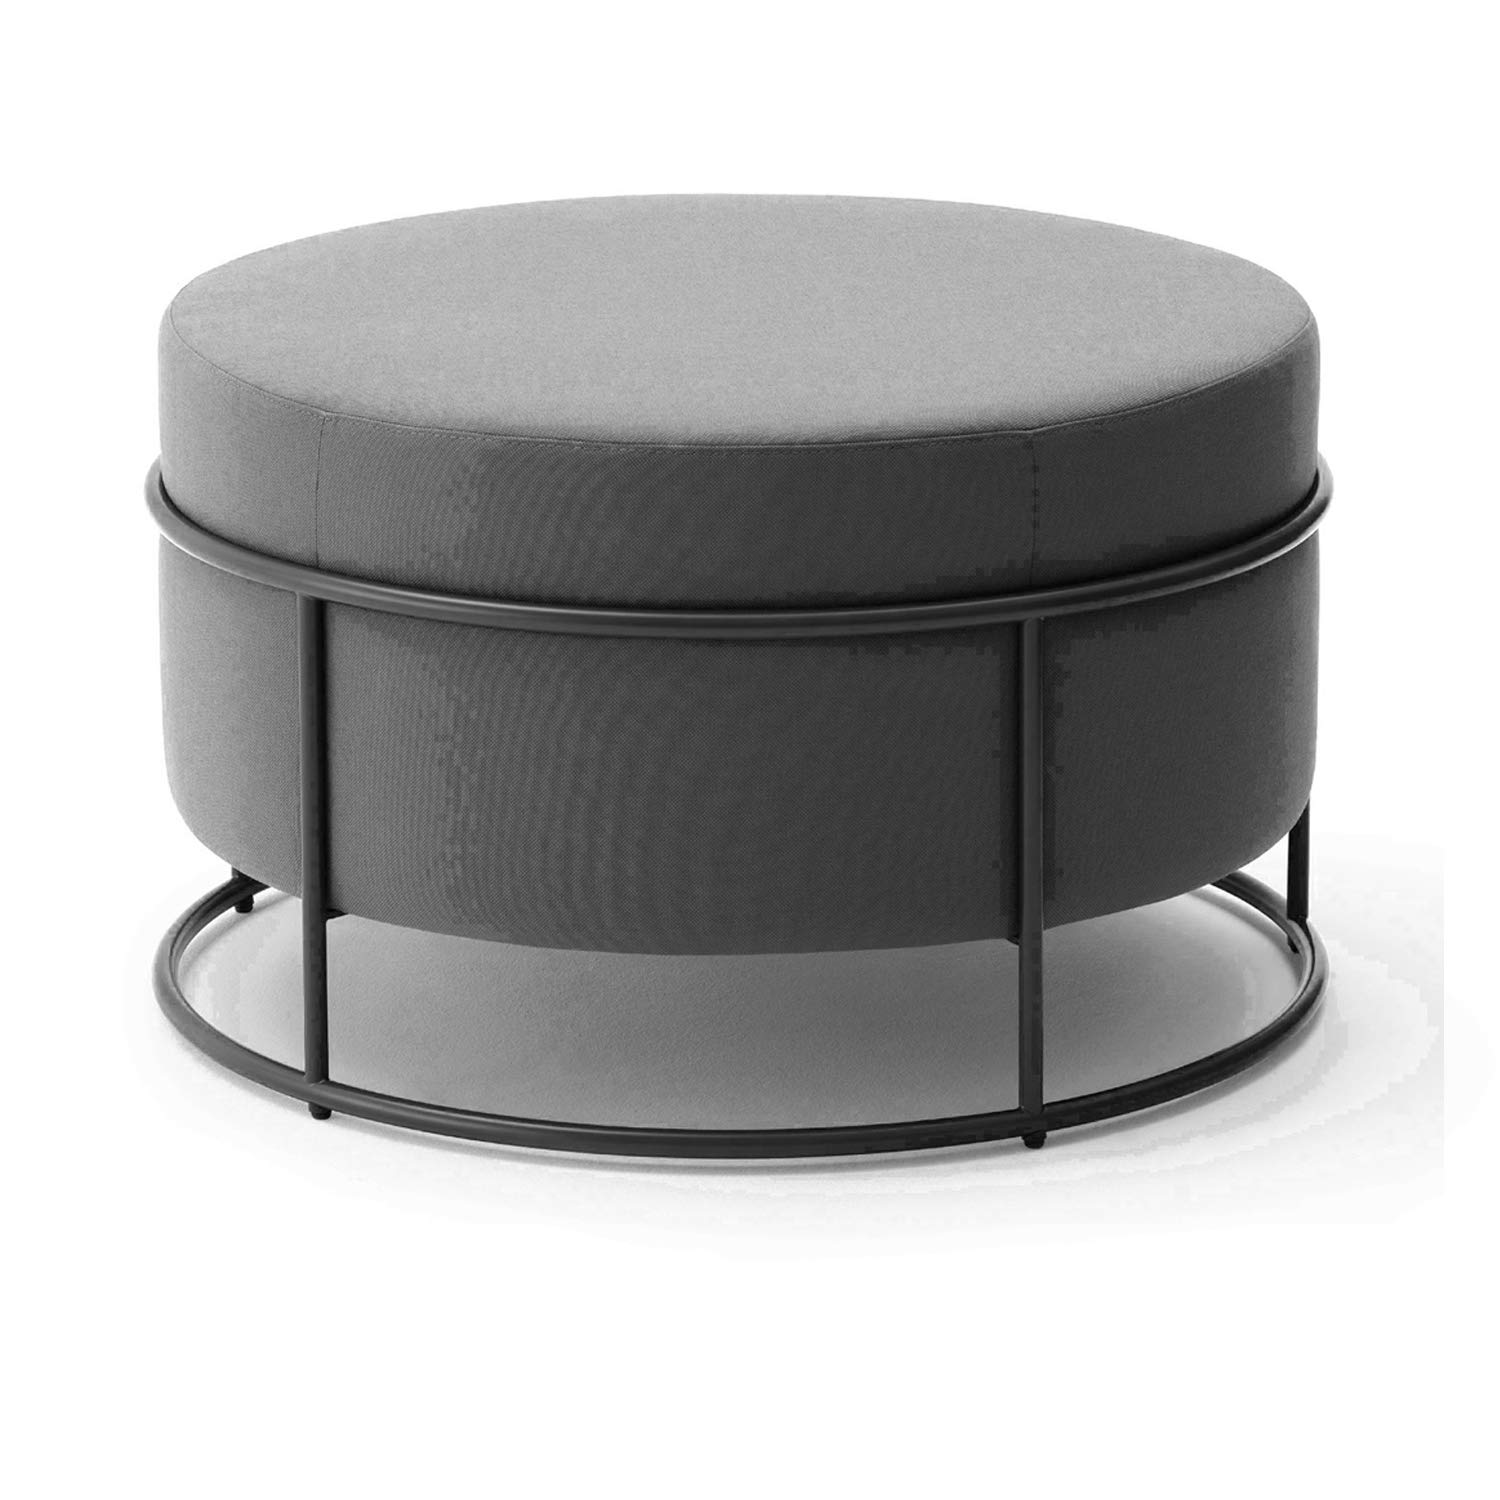 H 47x79cm(19x31inch) Footstool,Modern Simple Round Fabric Small Stool,Sofa Stool Makeup Stool shoes Bench Home Stool-b 47x36cm(19x14inch)